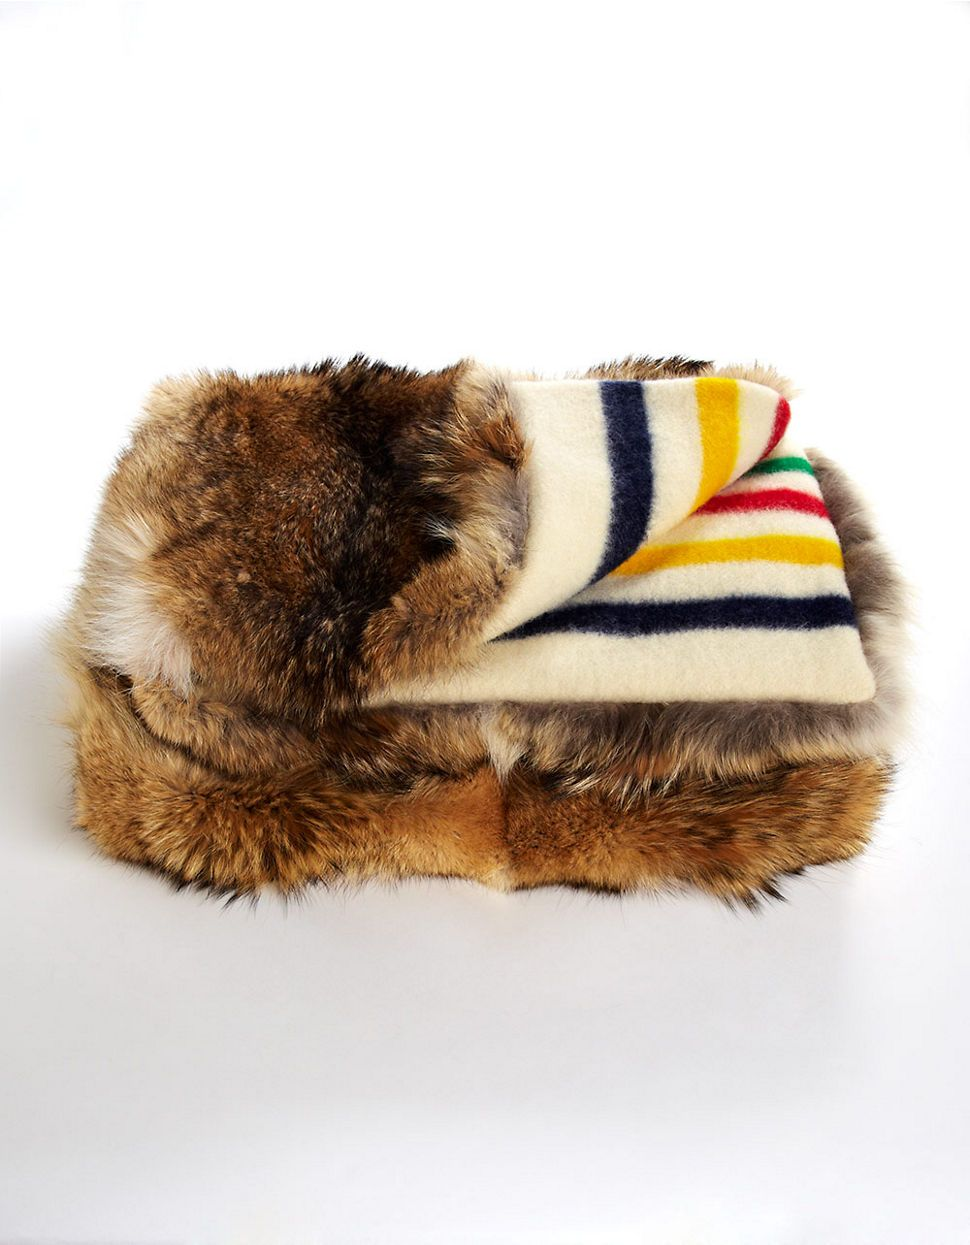 Covet I Would Build A Room Around This If I Owned It Hbc Collections Blankets Coyote Fur Throw Blanke Fur Throw Blanket Hudson Bay Blanket Fur Throw